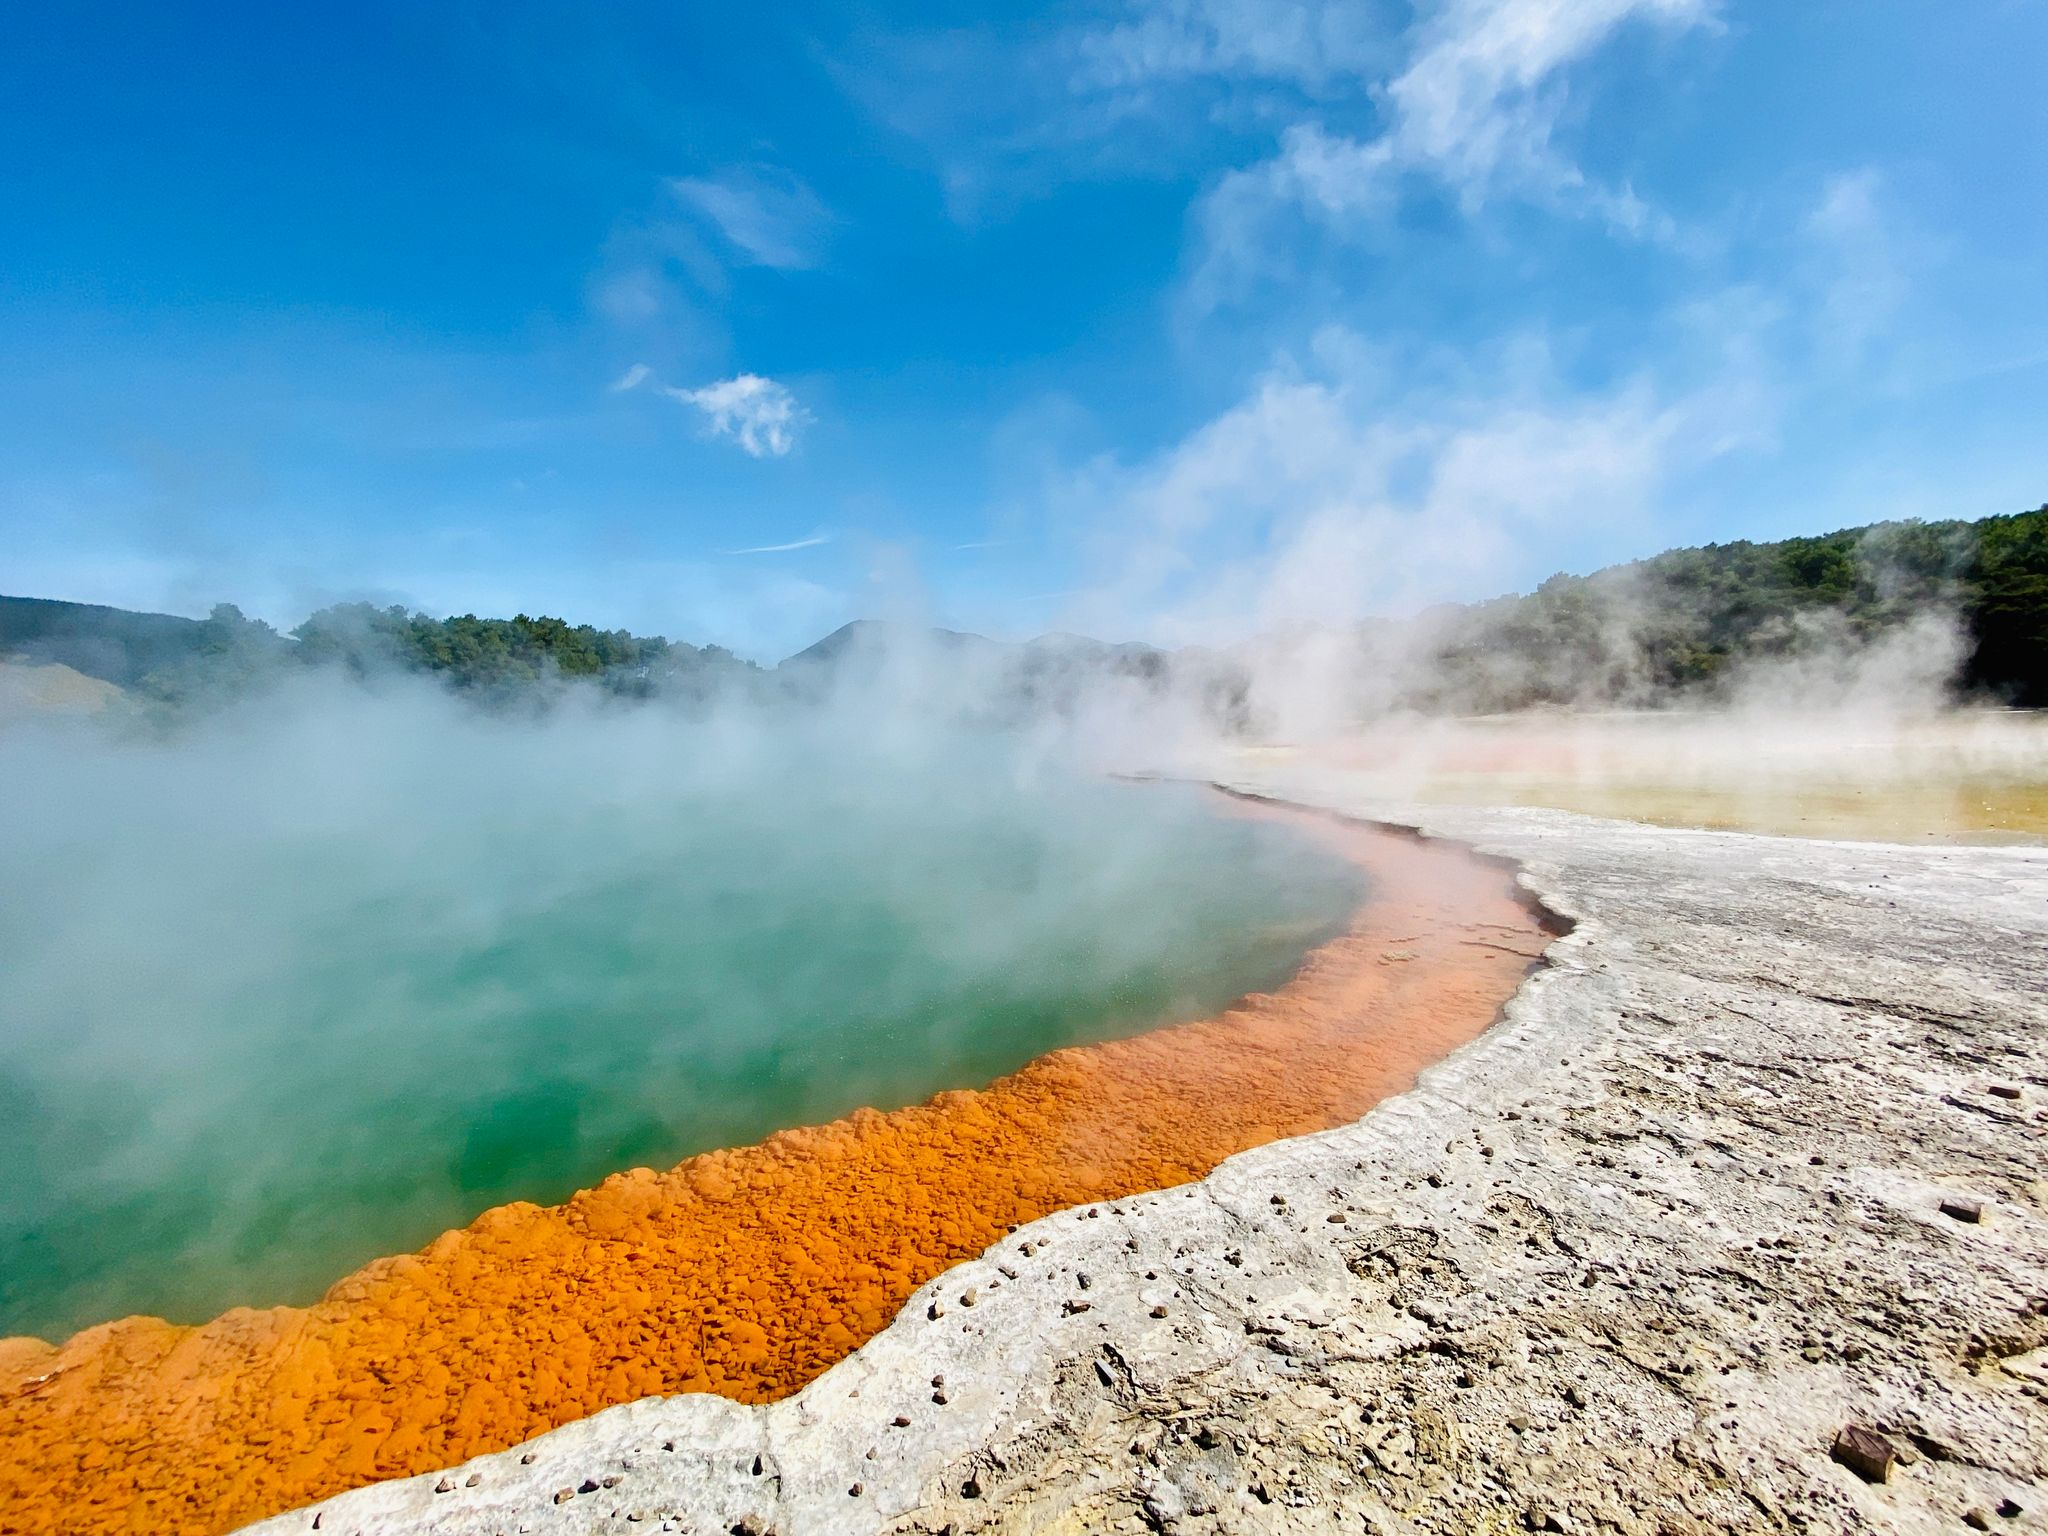 A photo of geothermal springs, the water is incredibly blue, there's a band of orange rock just at the edge of the water, and steam is billowing up from the surface.